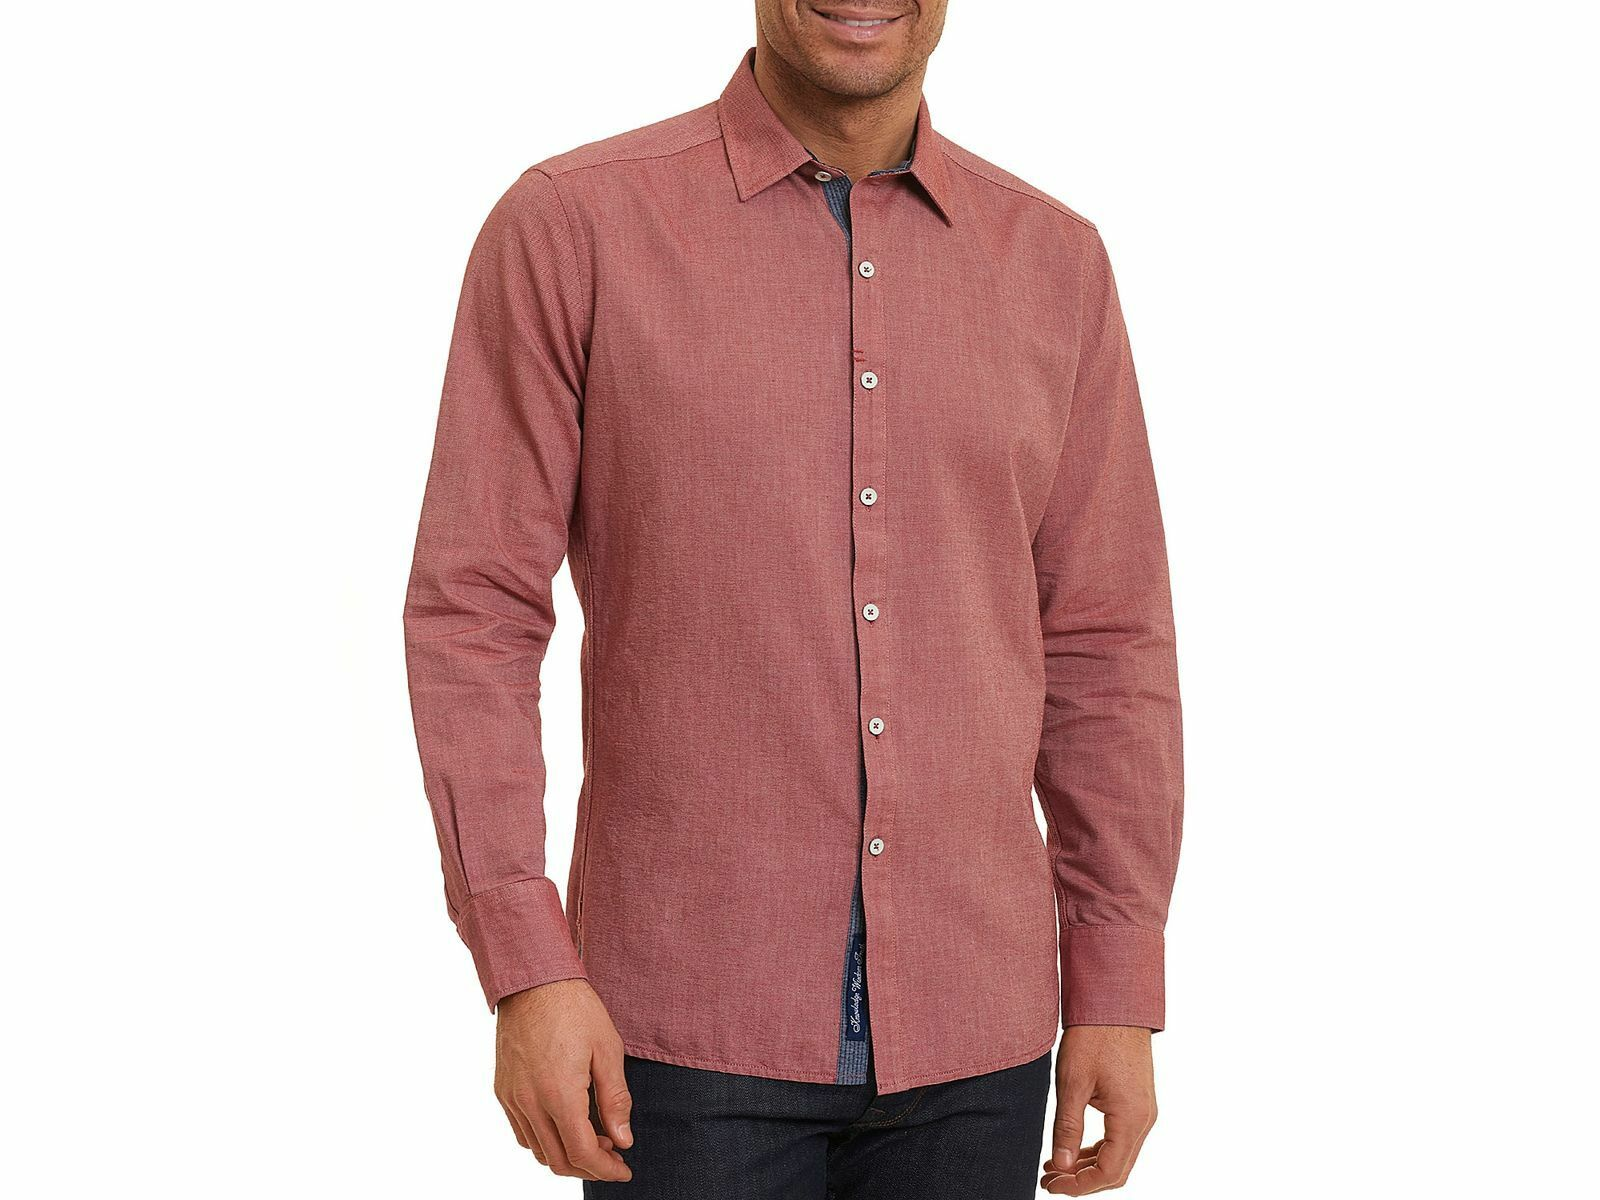 ROBERT GRAHAM Men's CLASSIC FIT RED LONG SLEEVE BUTTON TOP COTTON SHIRT XL